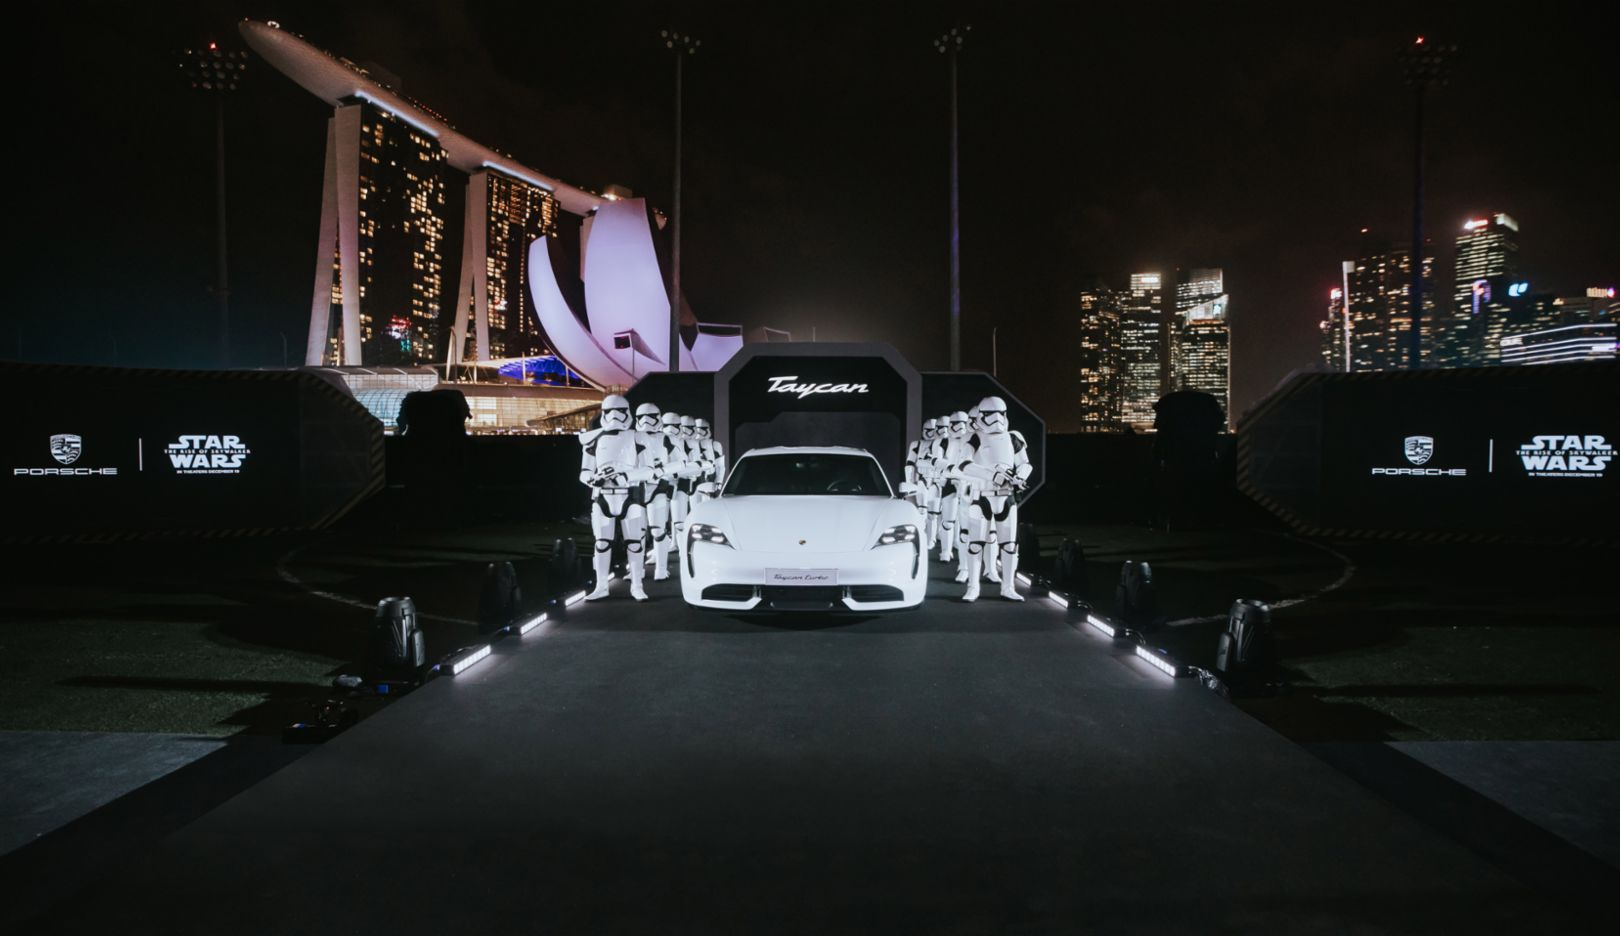 Porsche x Star Wars: Joining forces for the reveal of the Taycan in Singapore